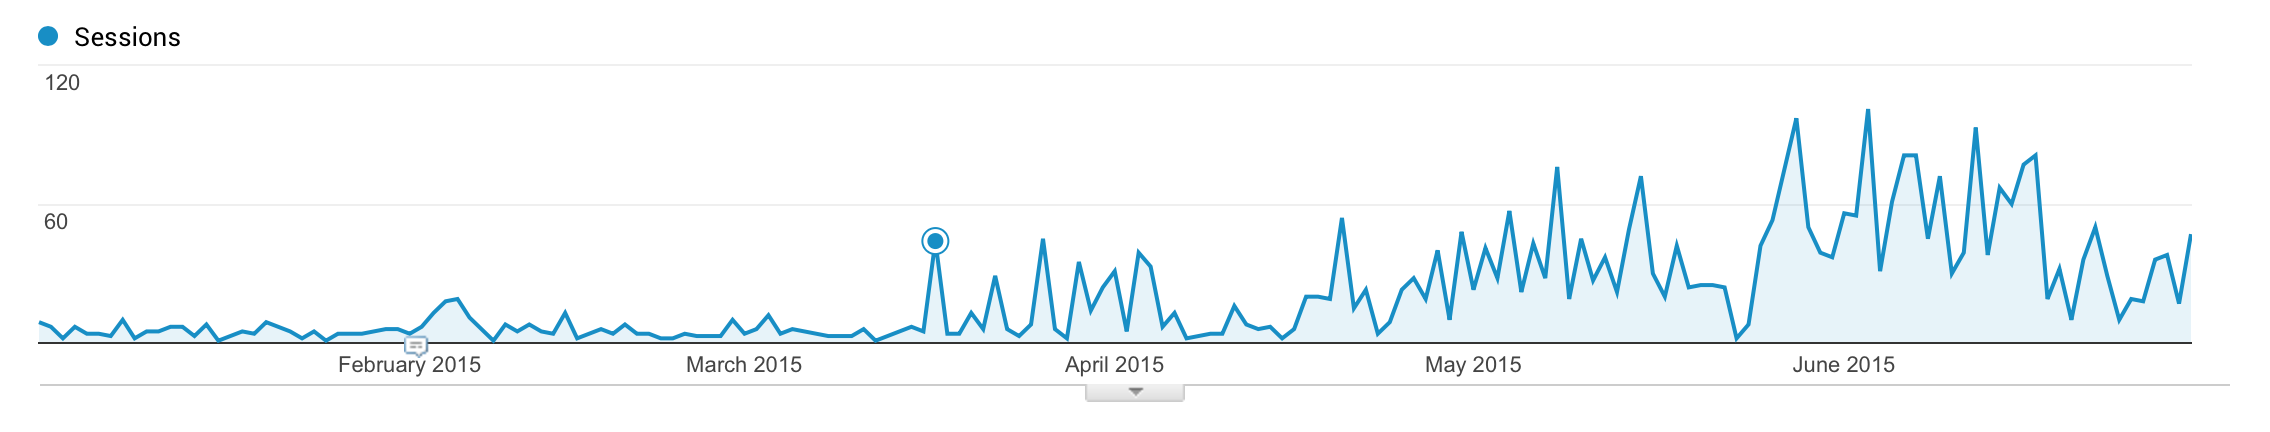 Google Analytics for Jäger and Friends Dog Park during the first 6 months of 2015